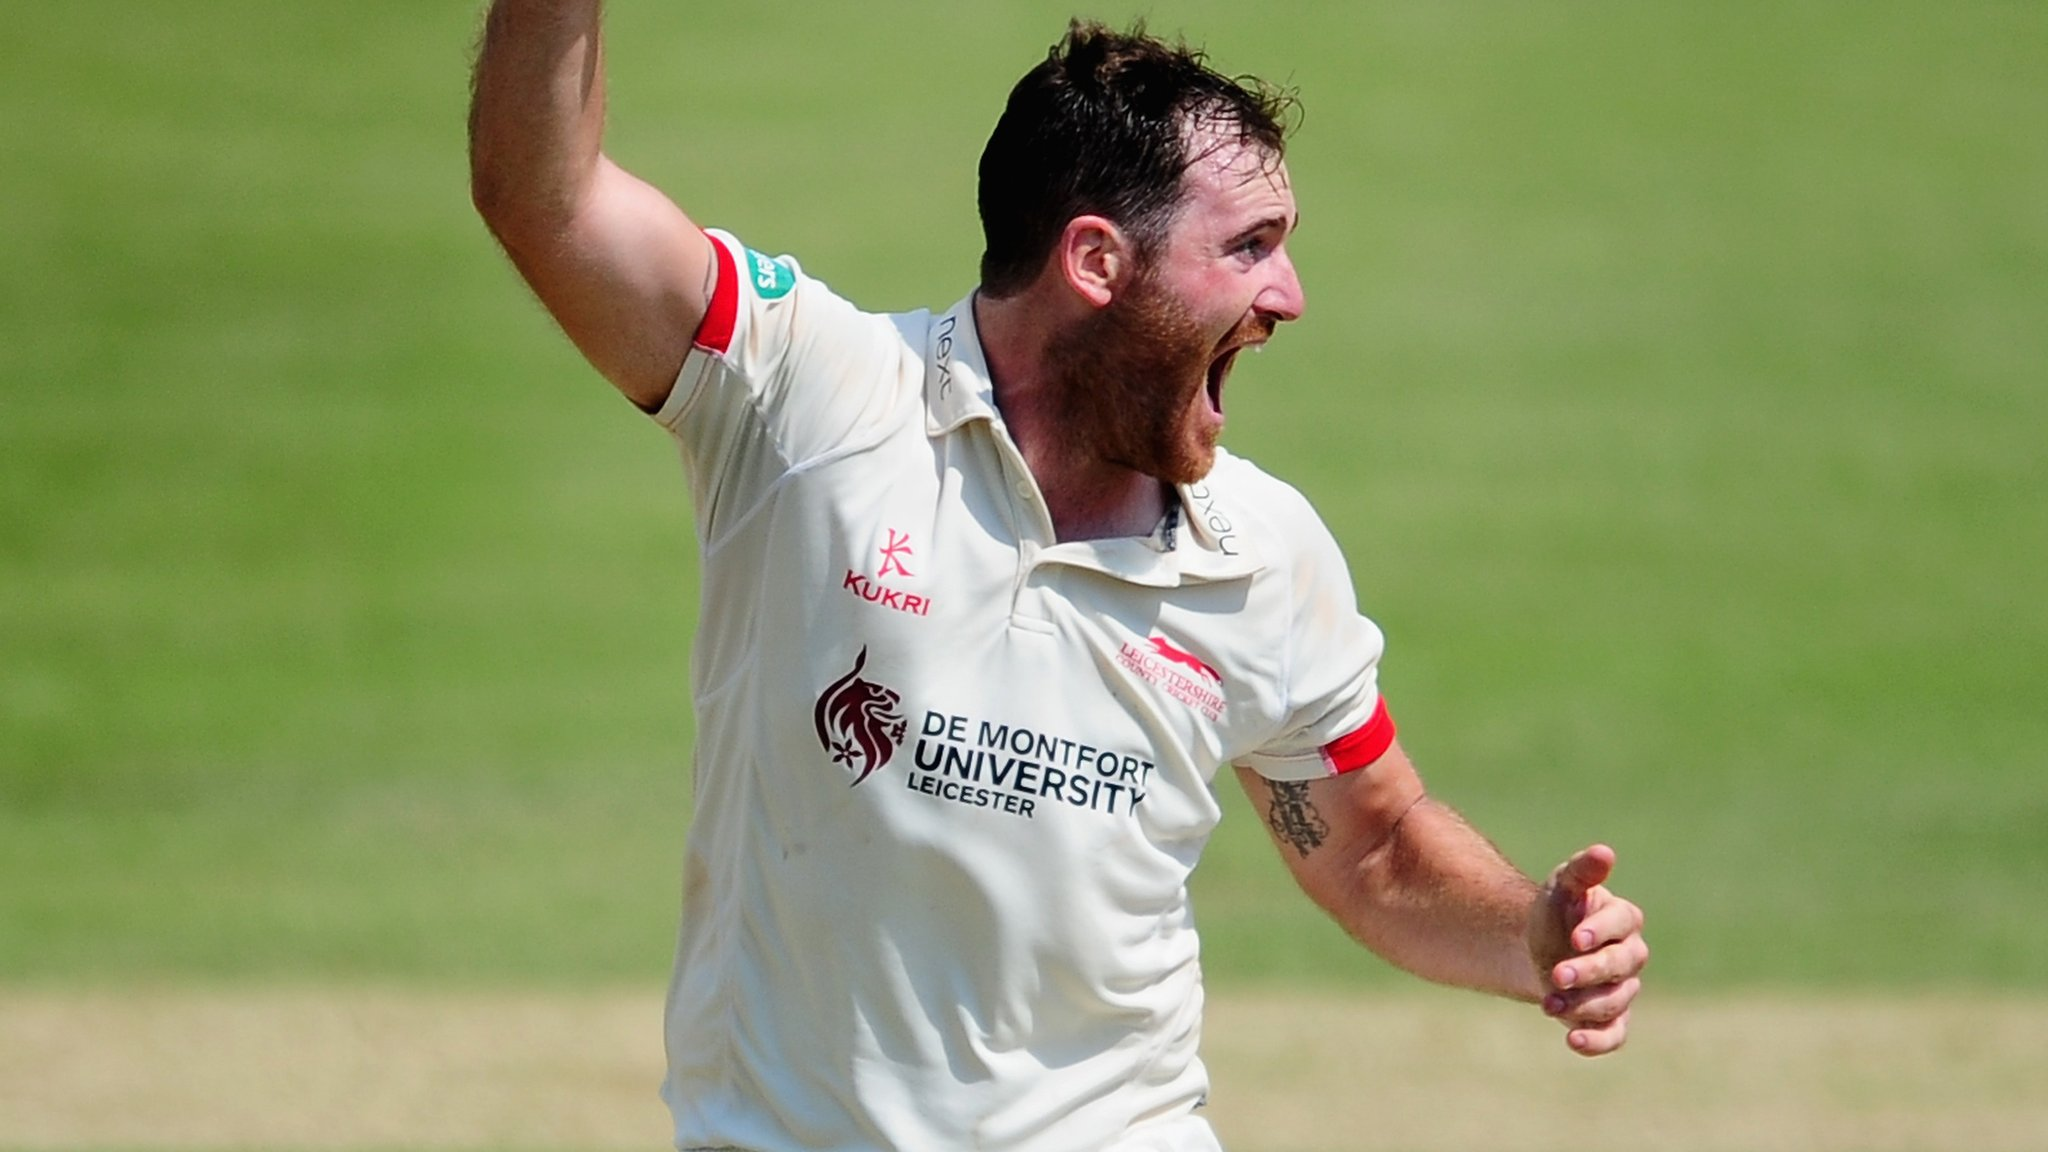 County Championship: Raine strikes as Leicestershire gain advantage against Middlesex